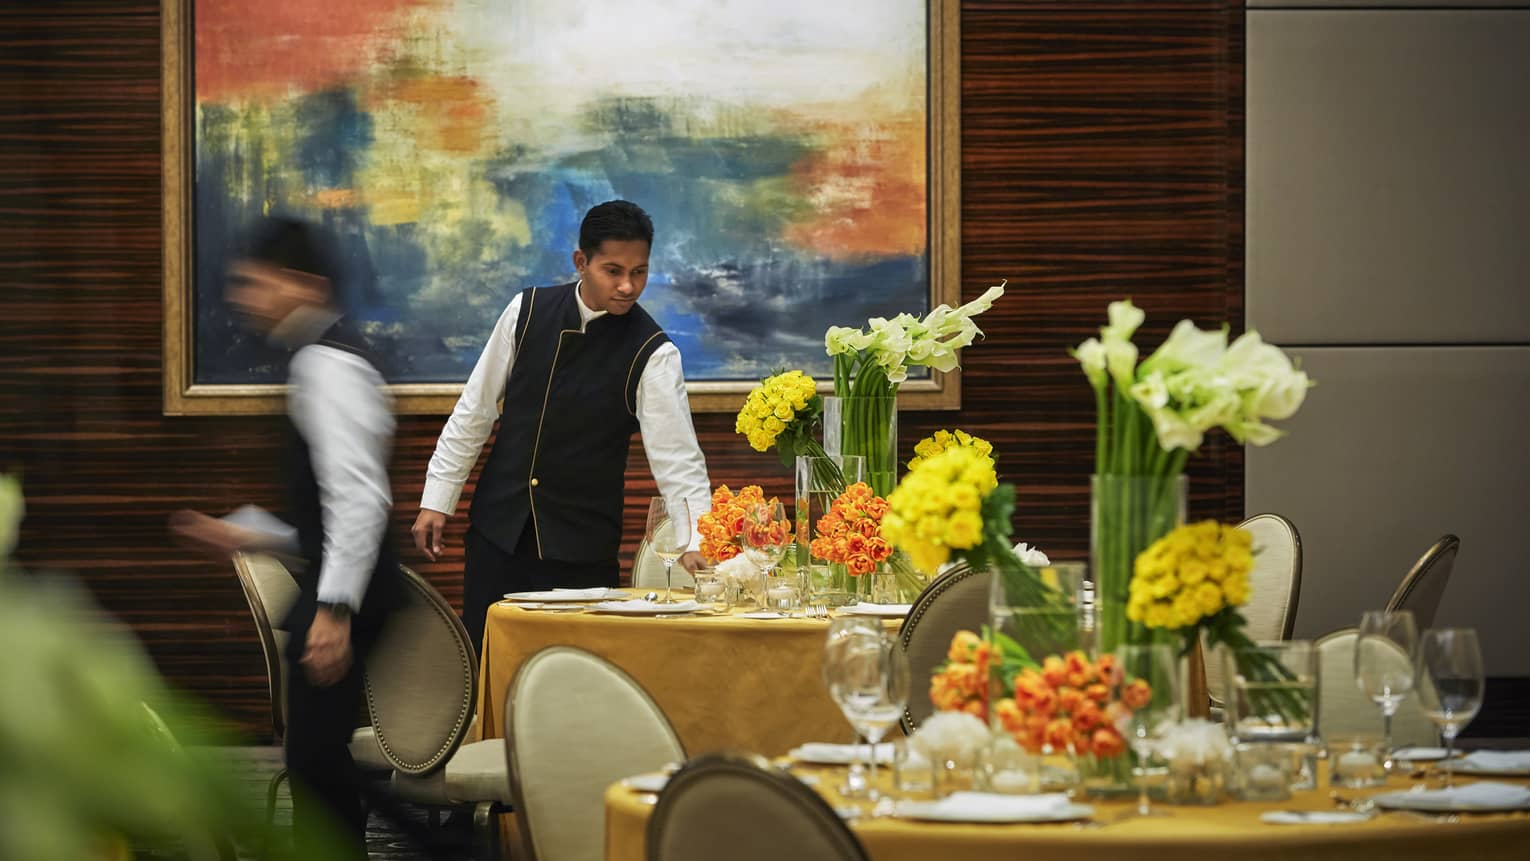 Server in black-and-white uniform sets round formal dining table with yellow linen, vases of fresh orange, yellow flowers